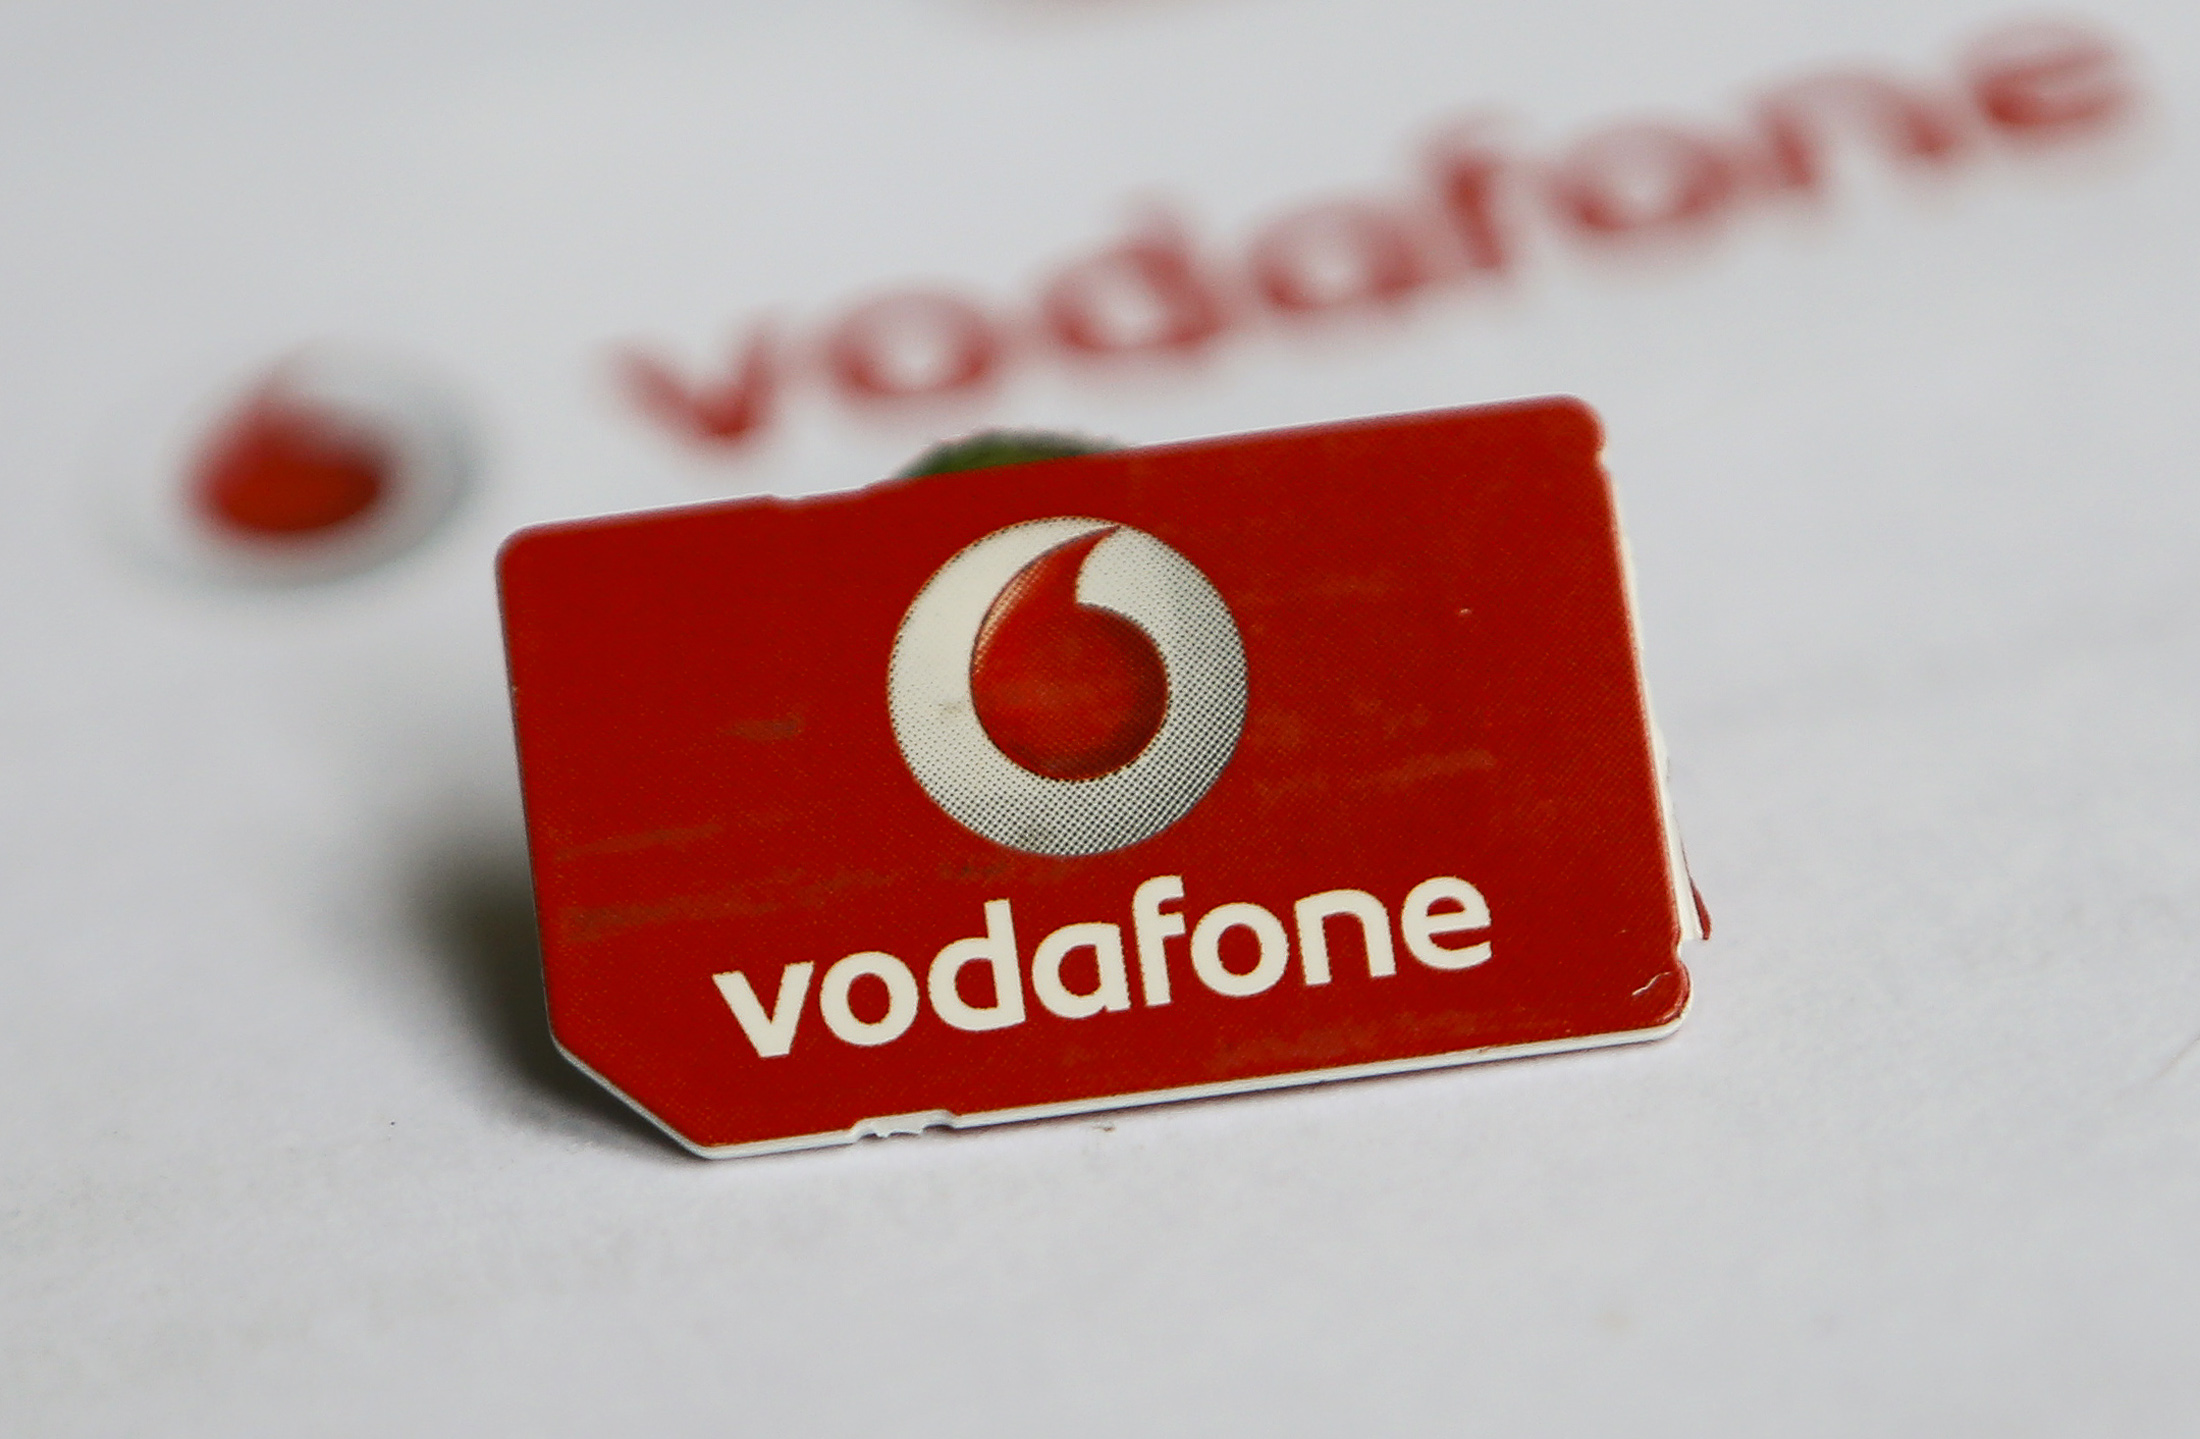 A SIM card of Vodafone is pictured in front of a letter of Vodafone in Dortmund